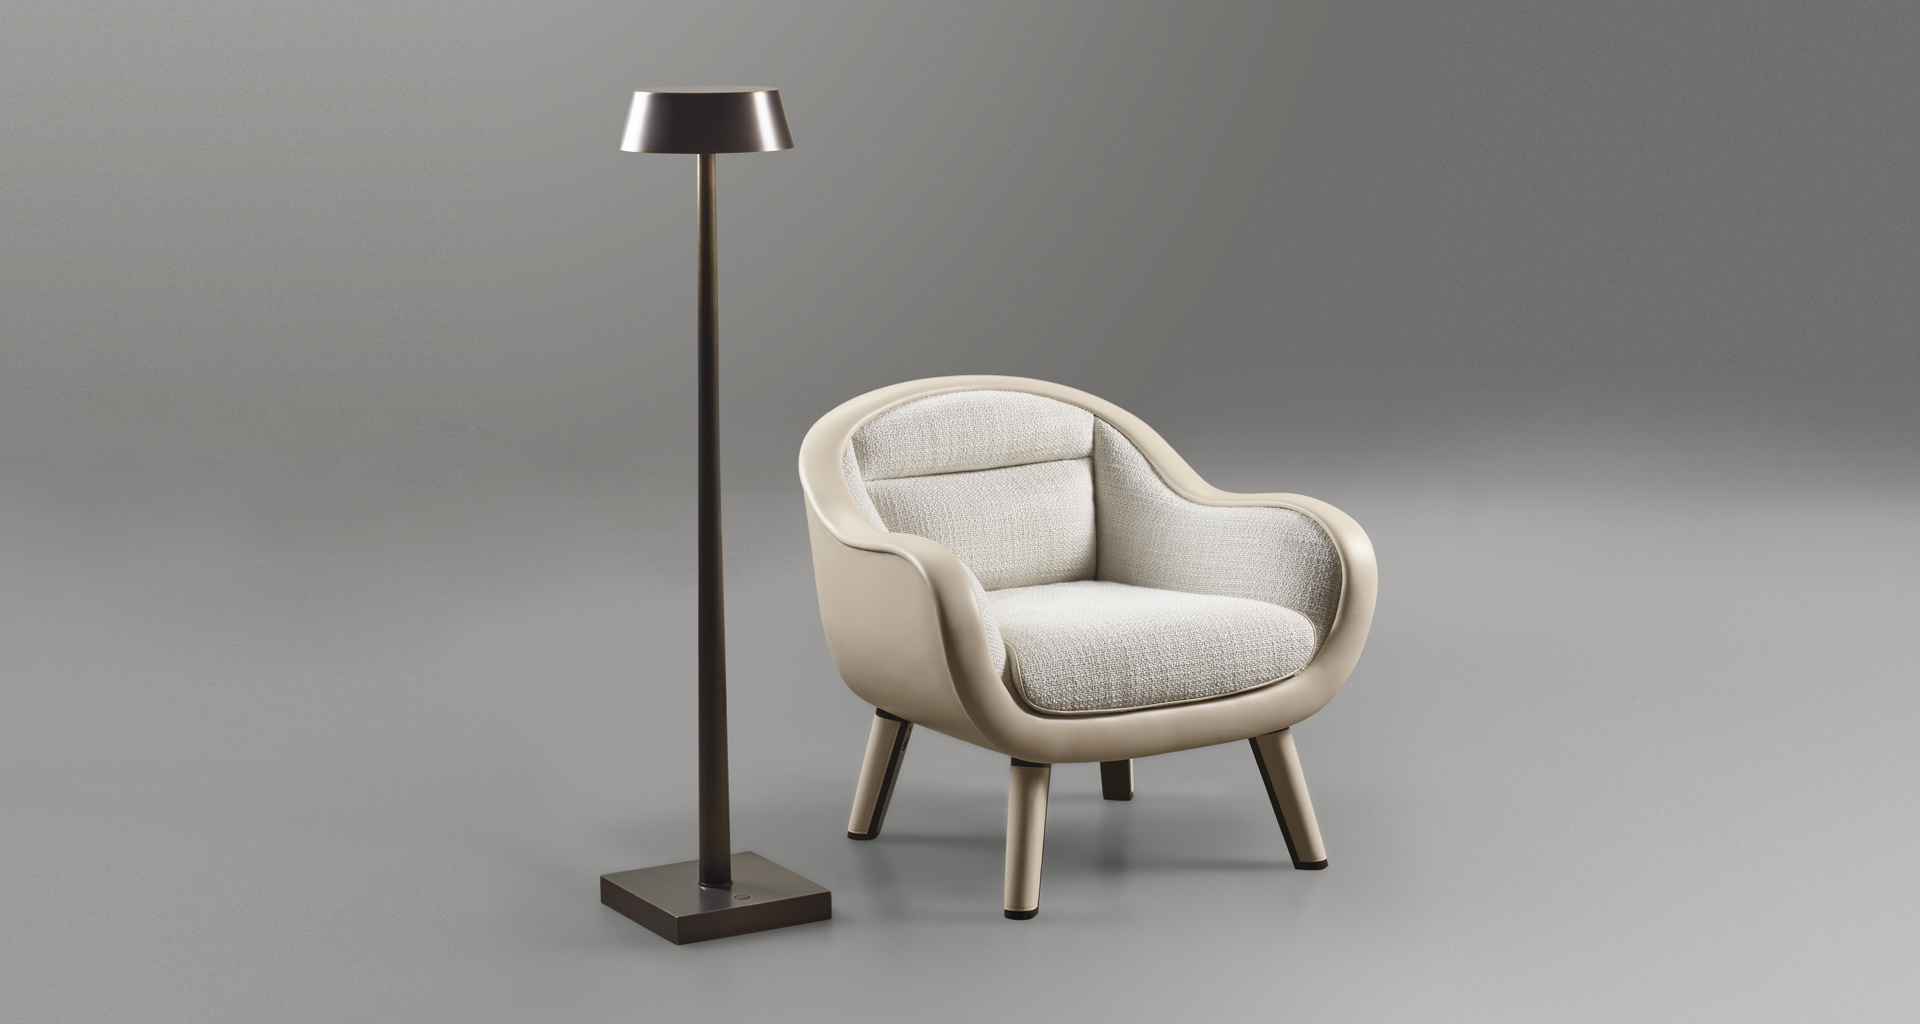 Vittoria is a wooden armchair with fabric or leather seat and a bronze handle on the back, from Promemoria's catalogue | Promemoria